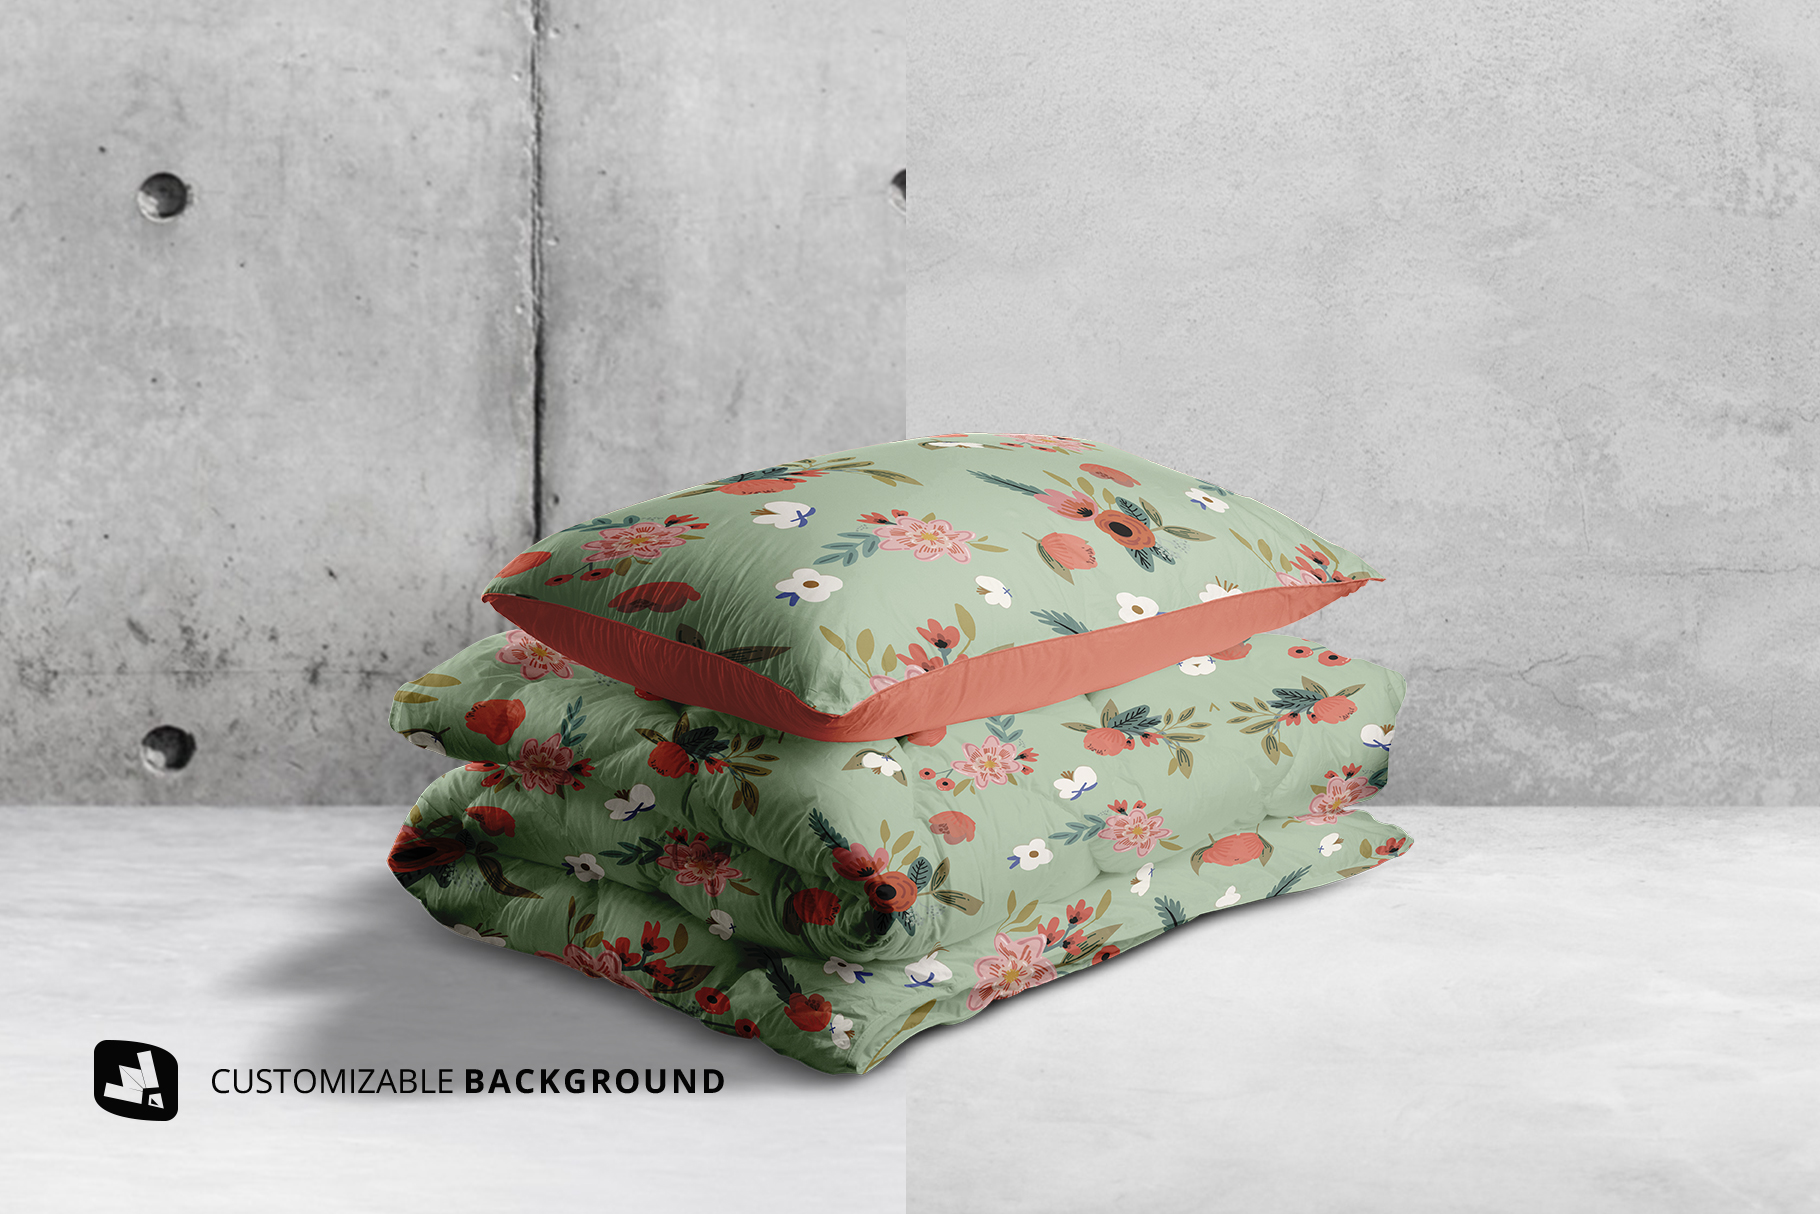 background options of the duvet & pillow case mockup